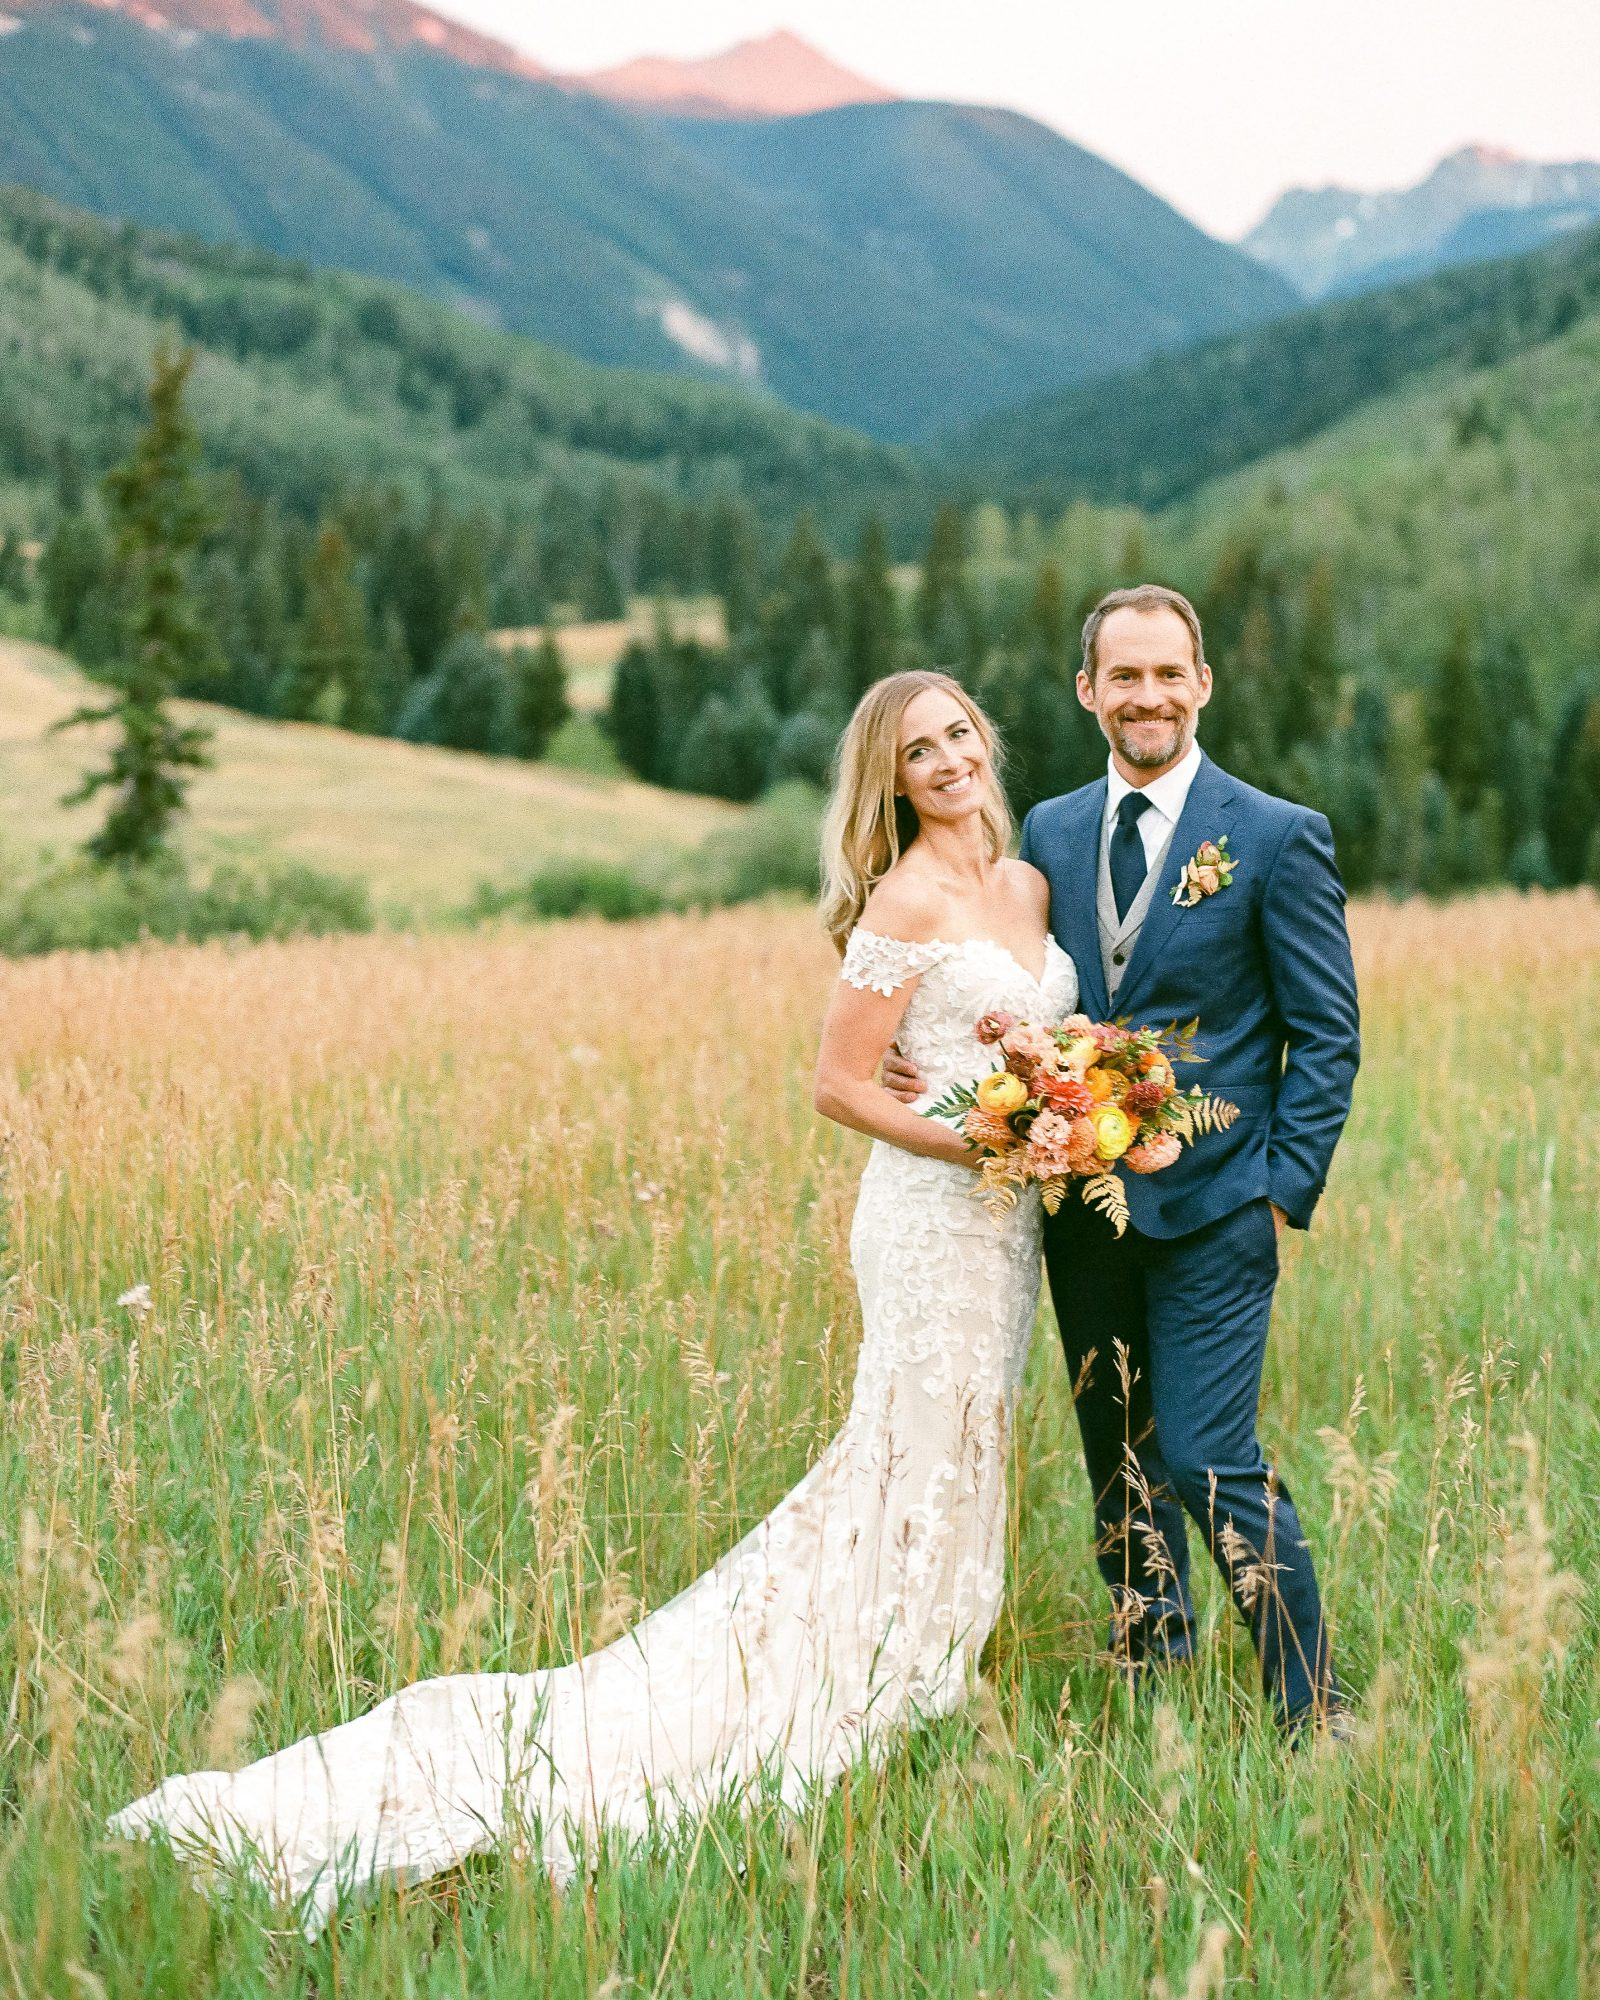 jill phil wedding couple posing in grass field with mountain view